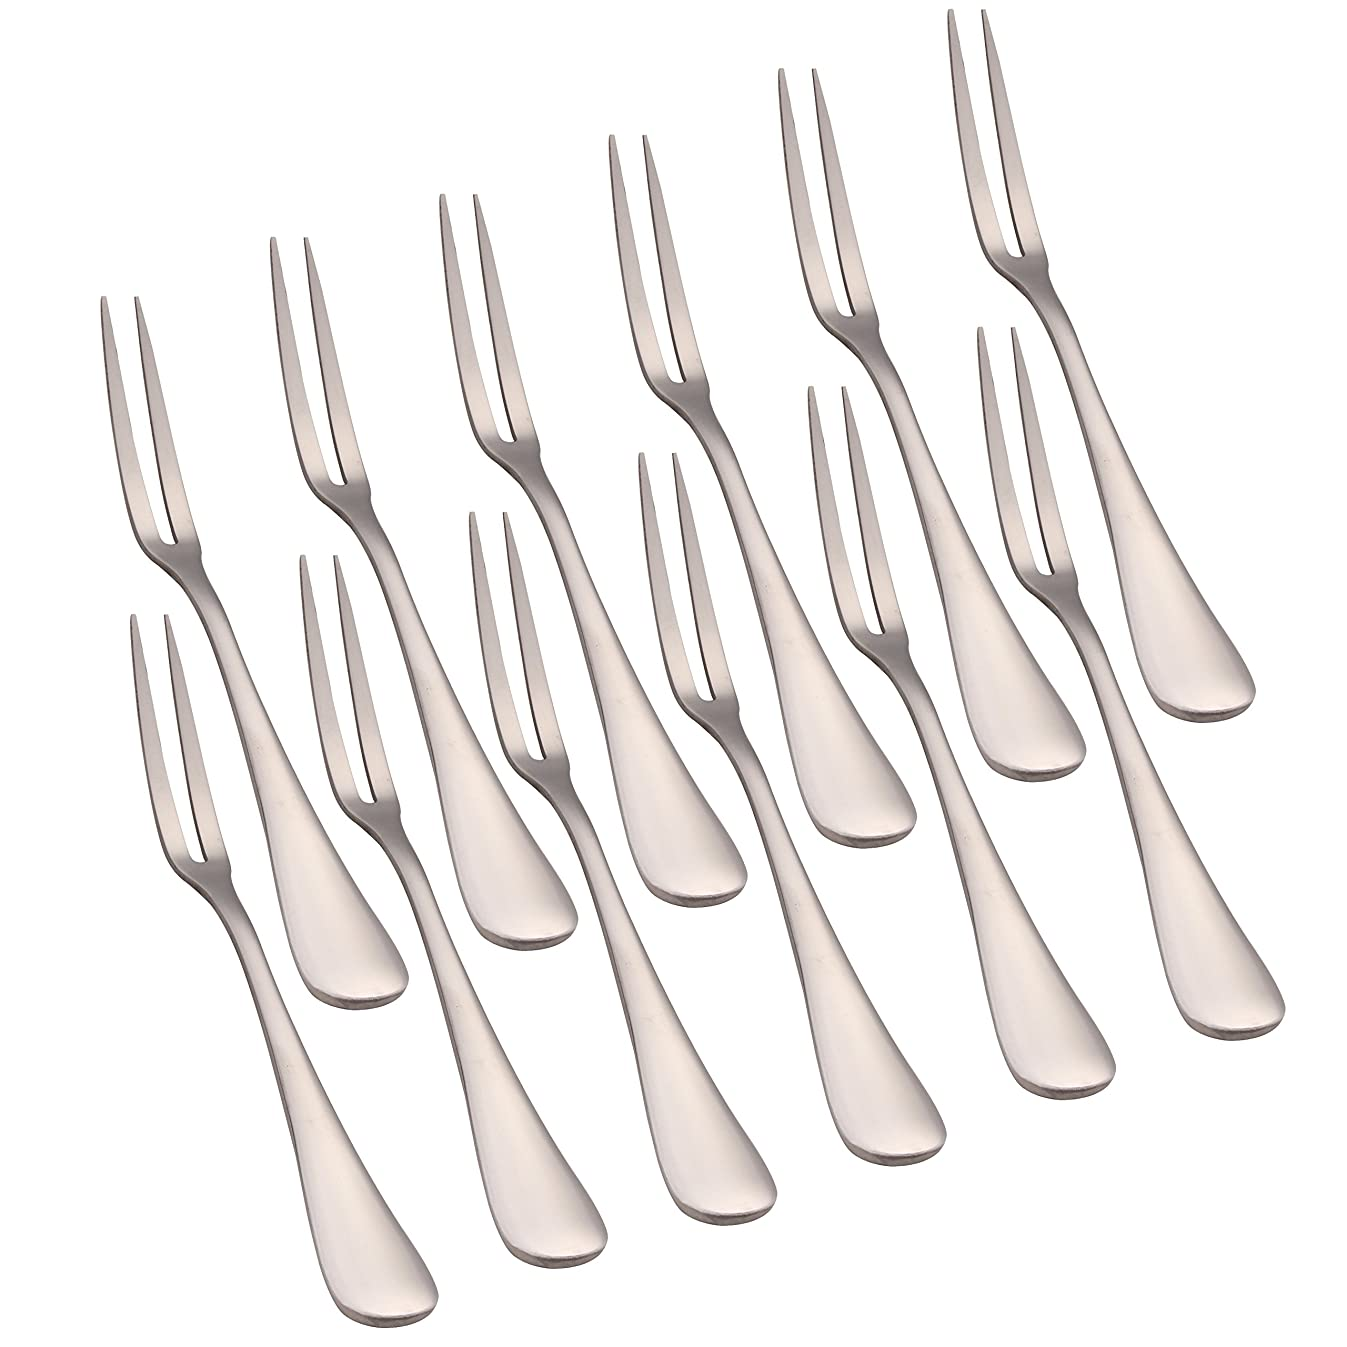 WARMBUY Set of 12 Fruit Forks, Stainless Steel Forks for Bistro Cocktail Tasting Appetizer and Mini Cake